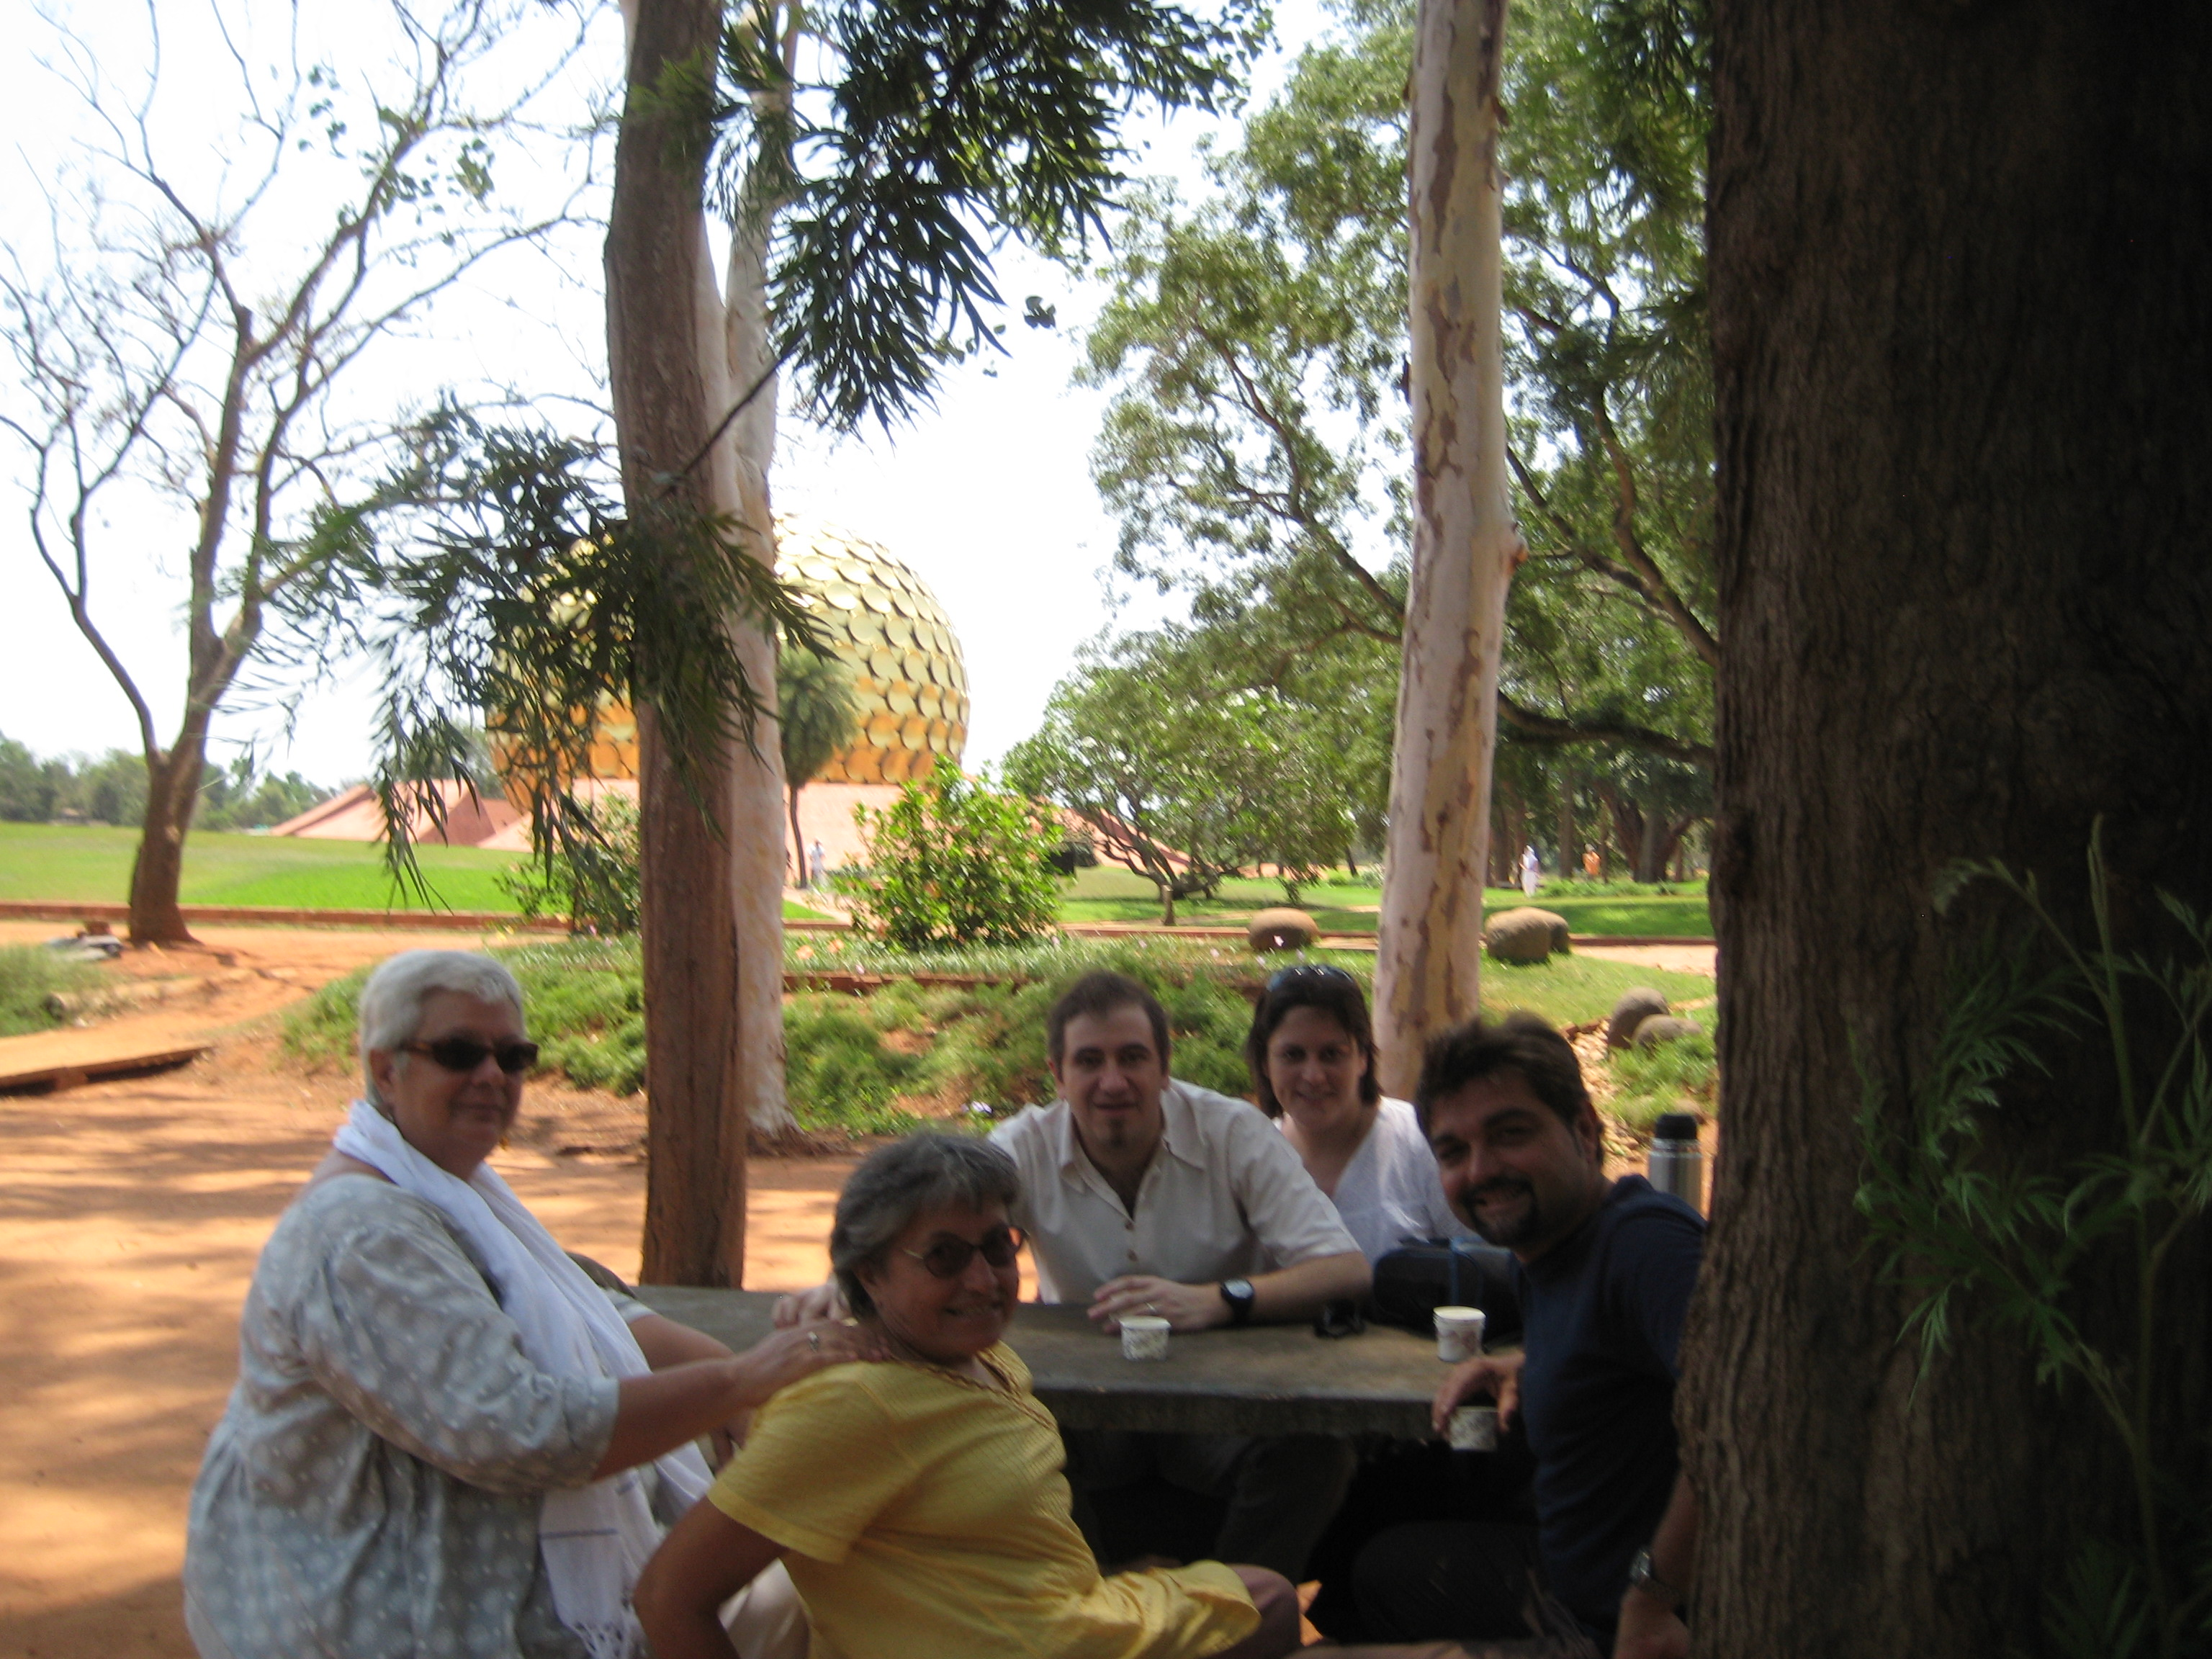 https://www.auroville.org.in/sites/www.auroville.org.in/files/article_attacments/IMG_6238.JPG